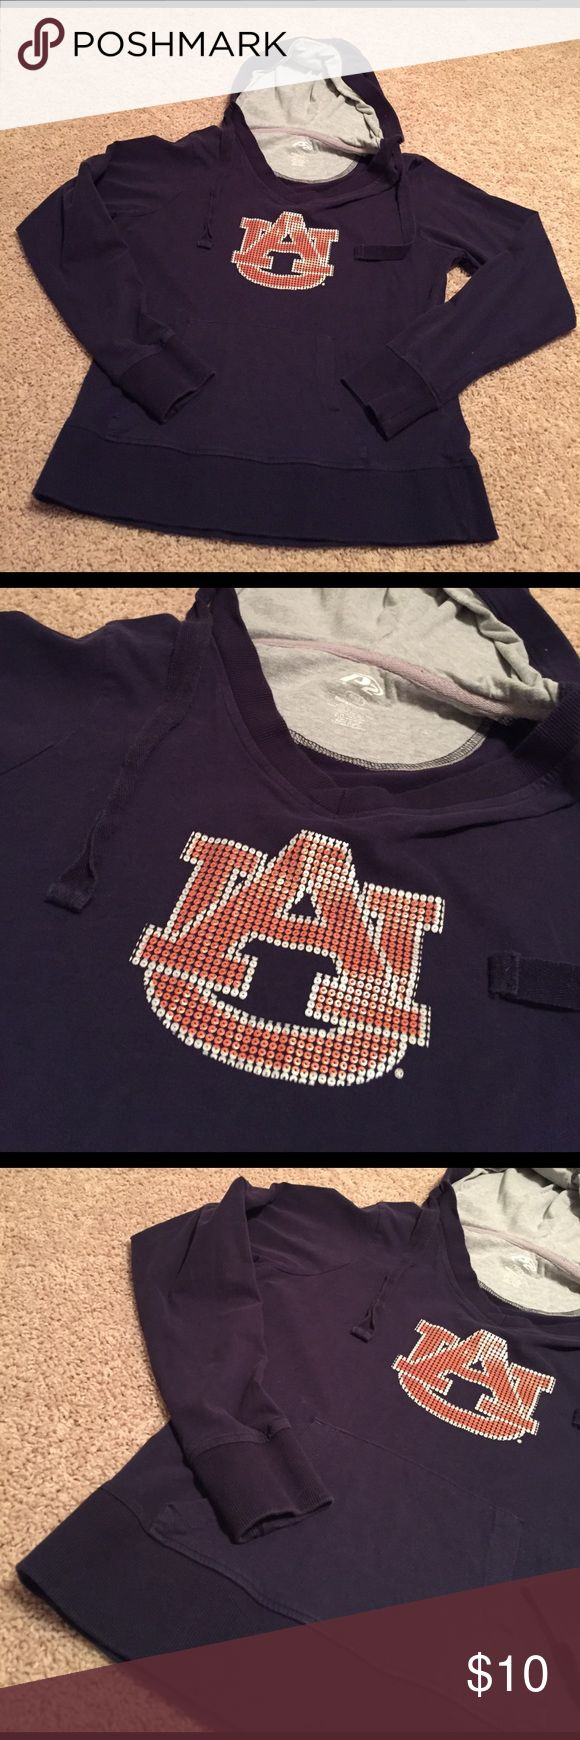 Auburn Navy Lightweight Hoodie! 💙 Auburn Navy Lightweight Hoodie! 💙 Size: Ladies 8/10! Worn several times but still in great condition!! Very warm and extremely comfortable!!! 100% cotton! P2 Tops Sweatshirts & Hoodies